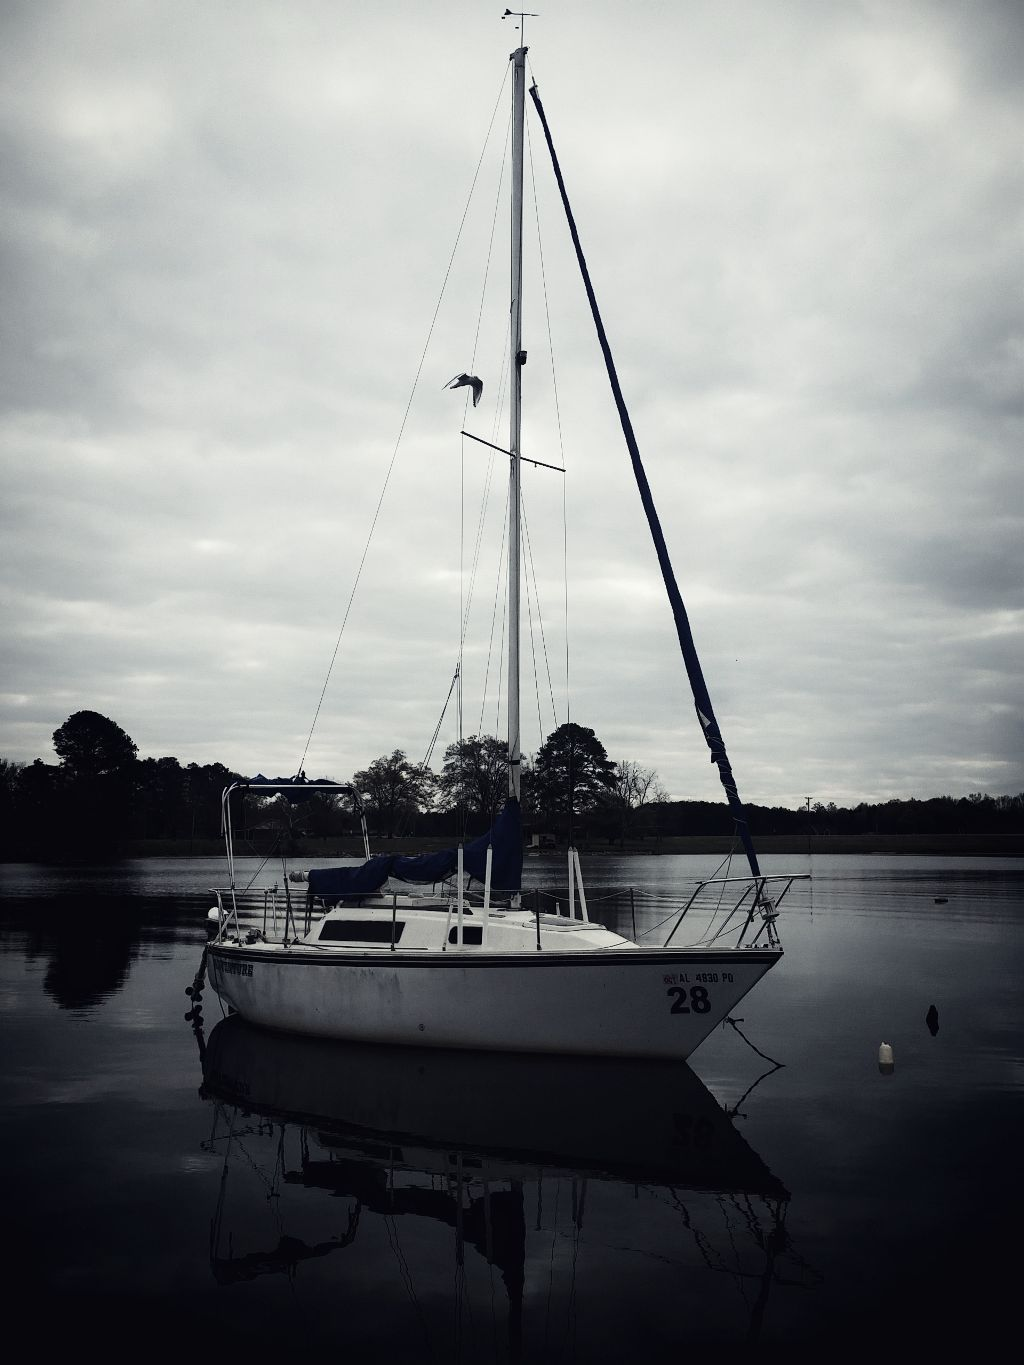 #boat #water #weather